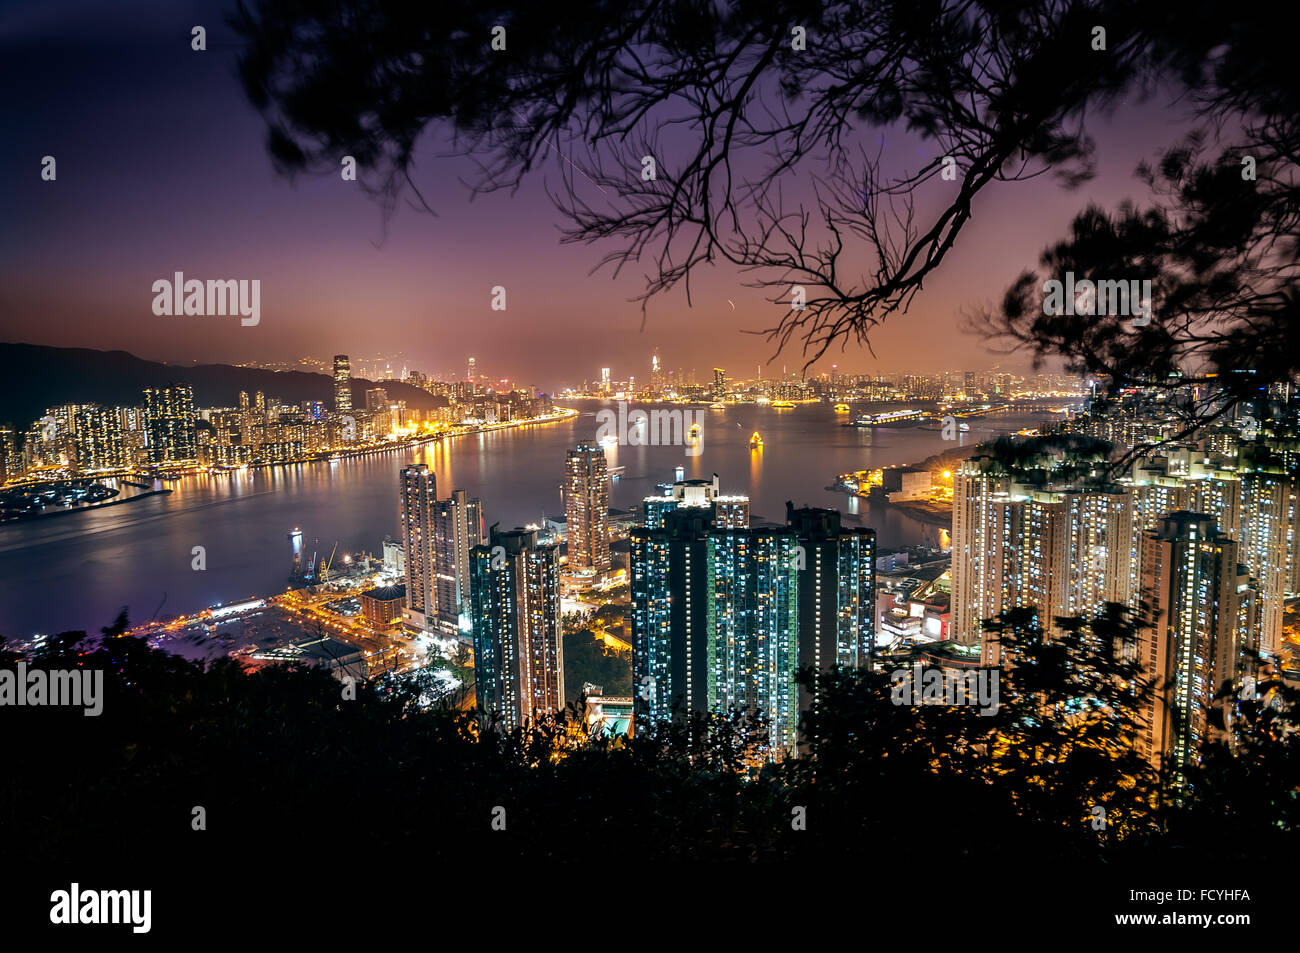 Illuminated cityscape and Victoria Harbour as seen from Devil's Peak, Kowloon - Stock Image